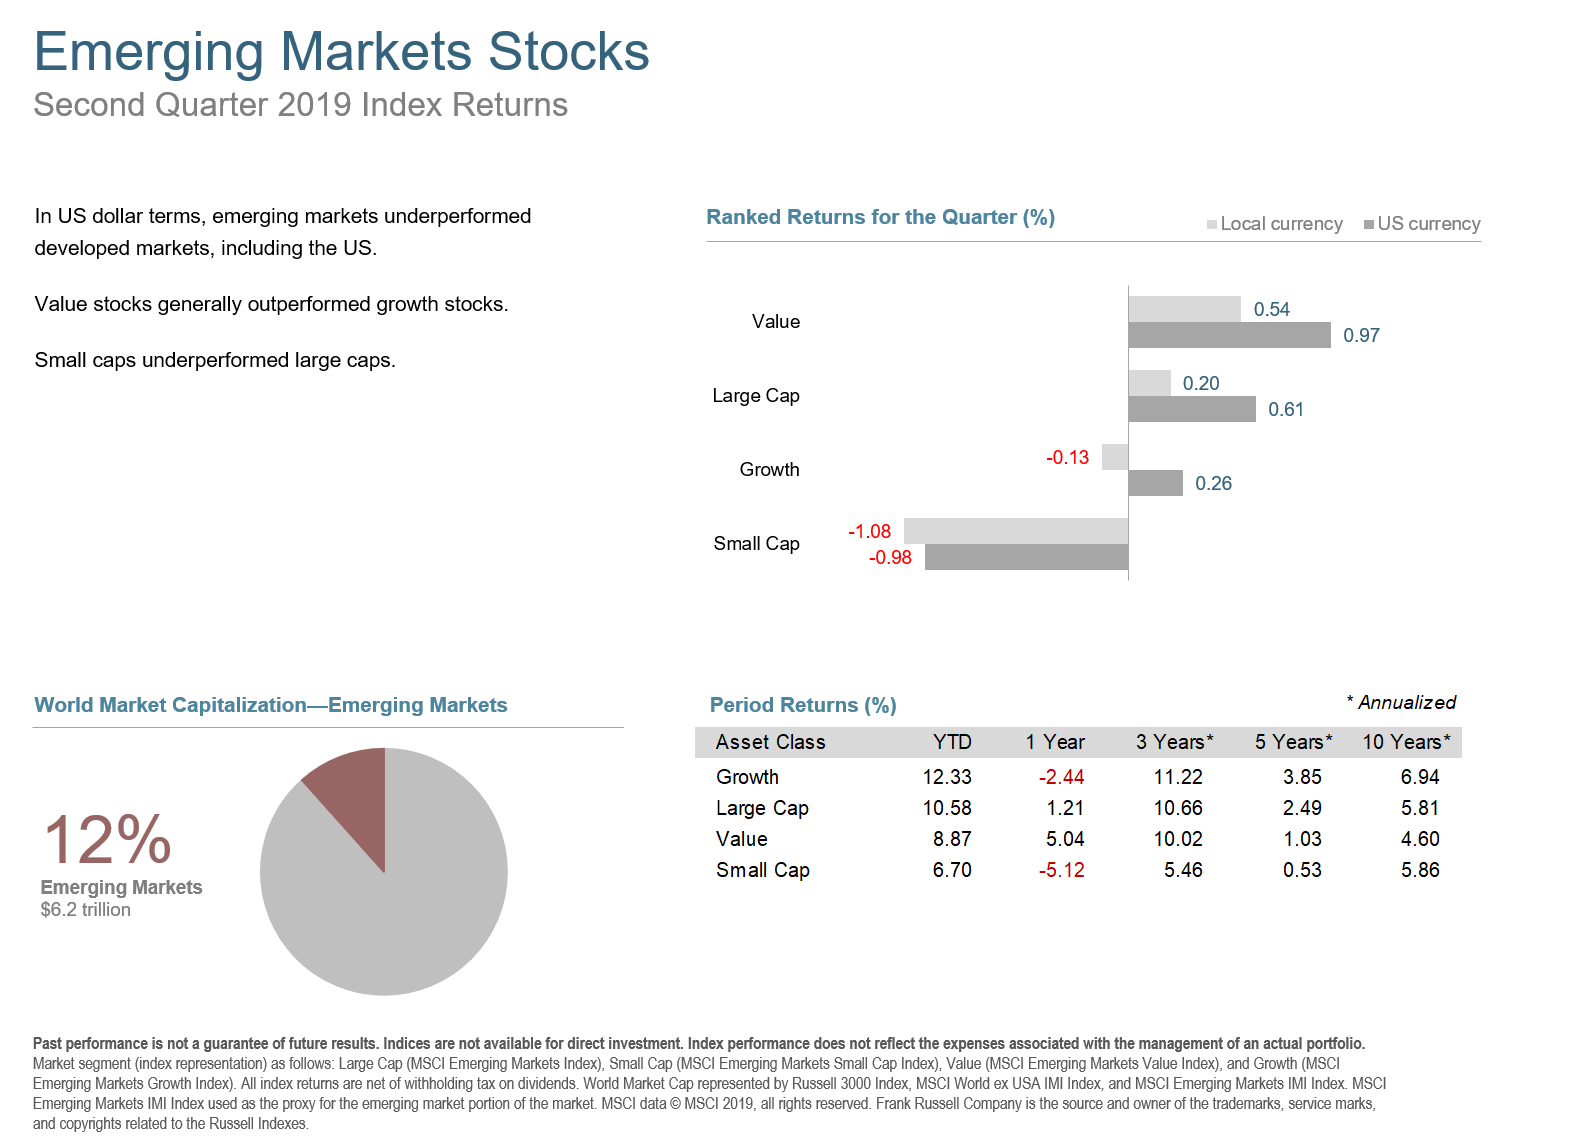 Q2 2019 Emerging Markets Stocks